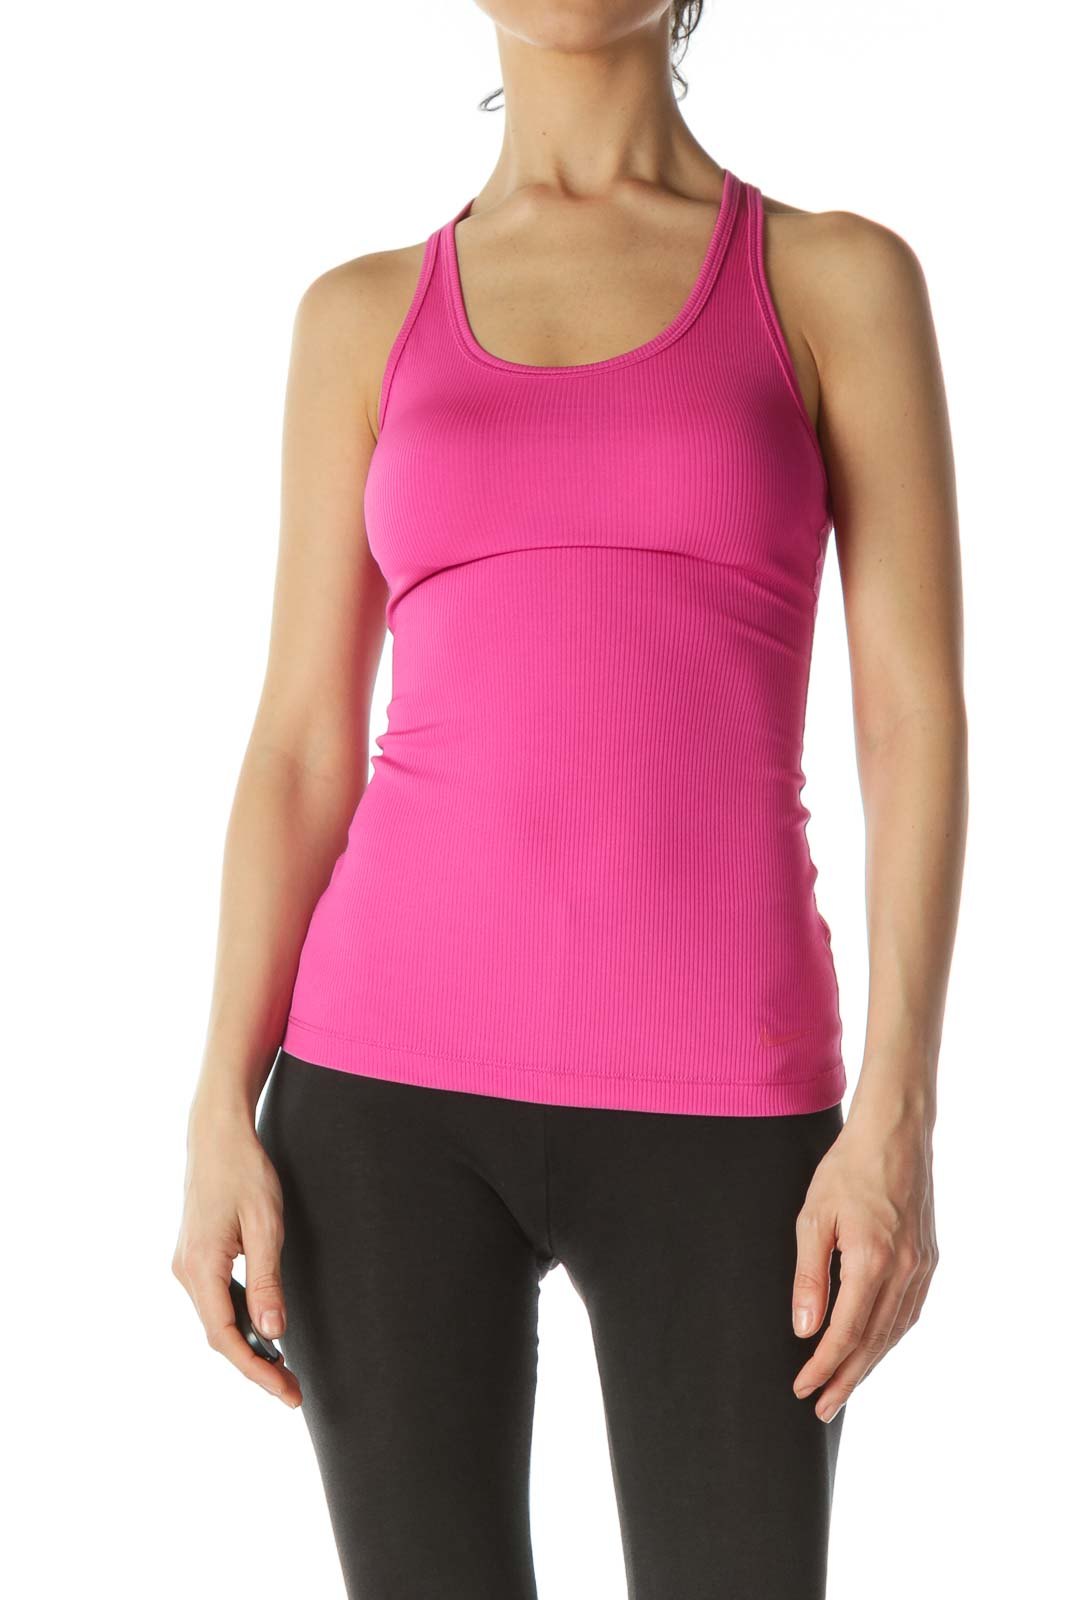 Magenta-Pink Textured Sleeveless Sports Tank